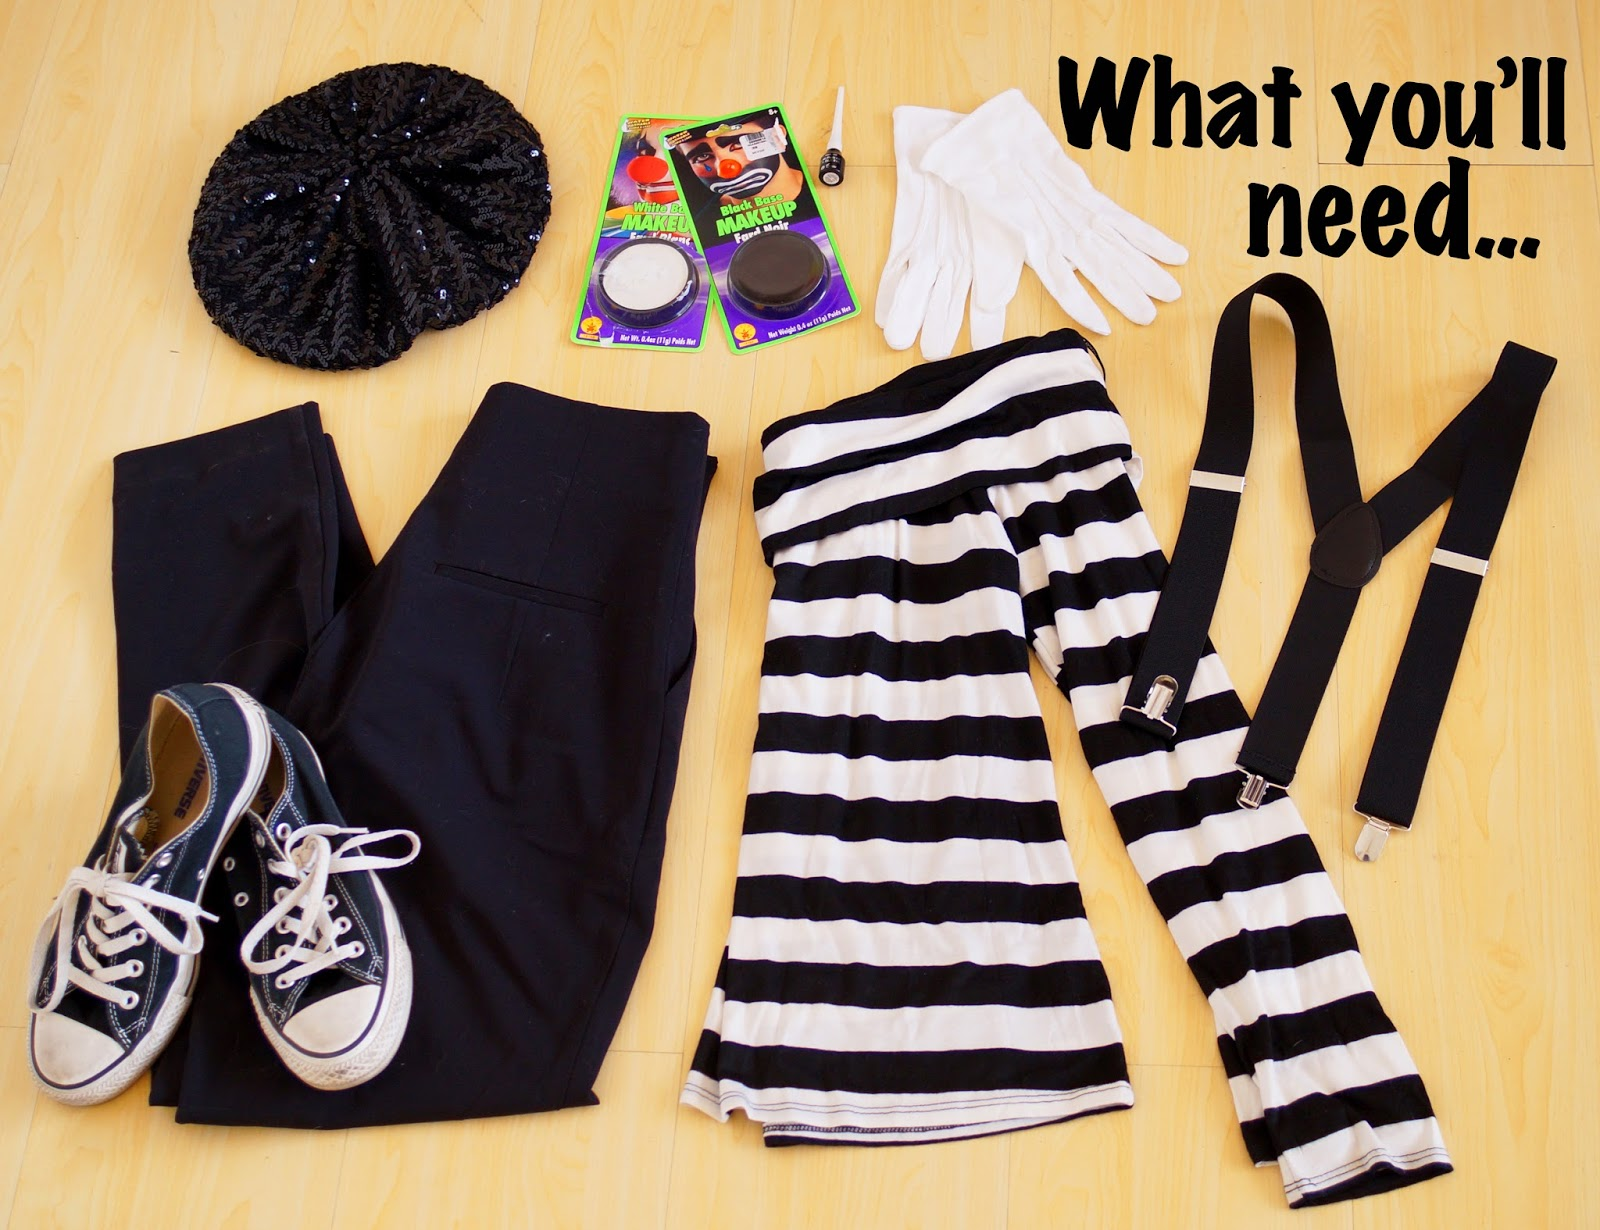 Homemade Costume Ideas & The Joy of Fashion: Halloween: Last Minute Homemade Mime Costume